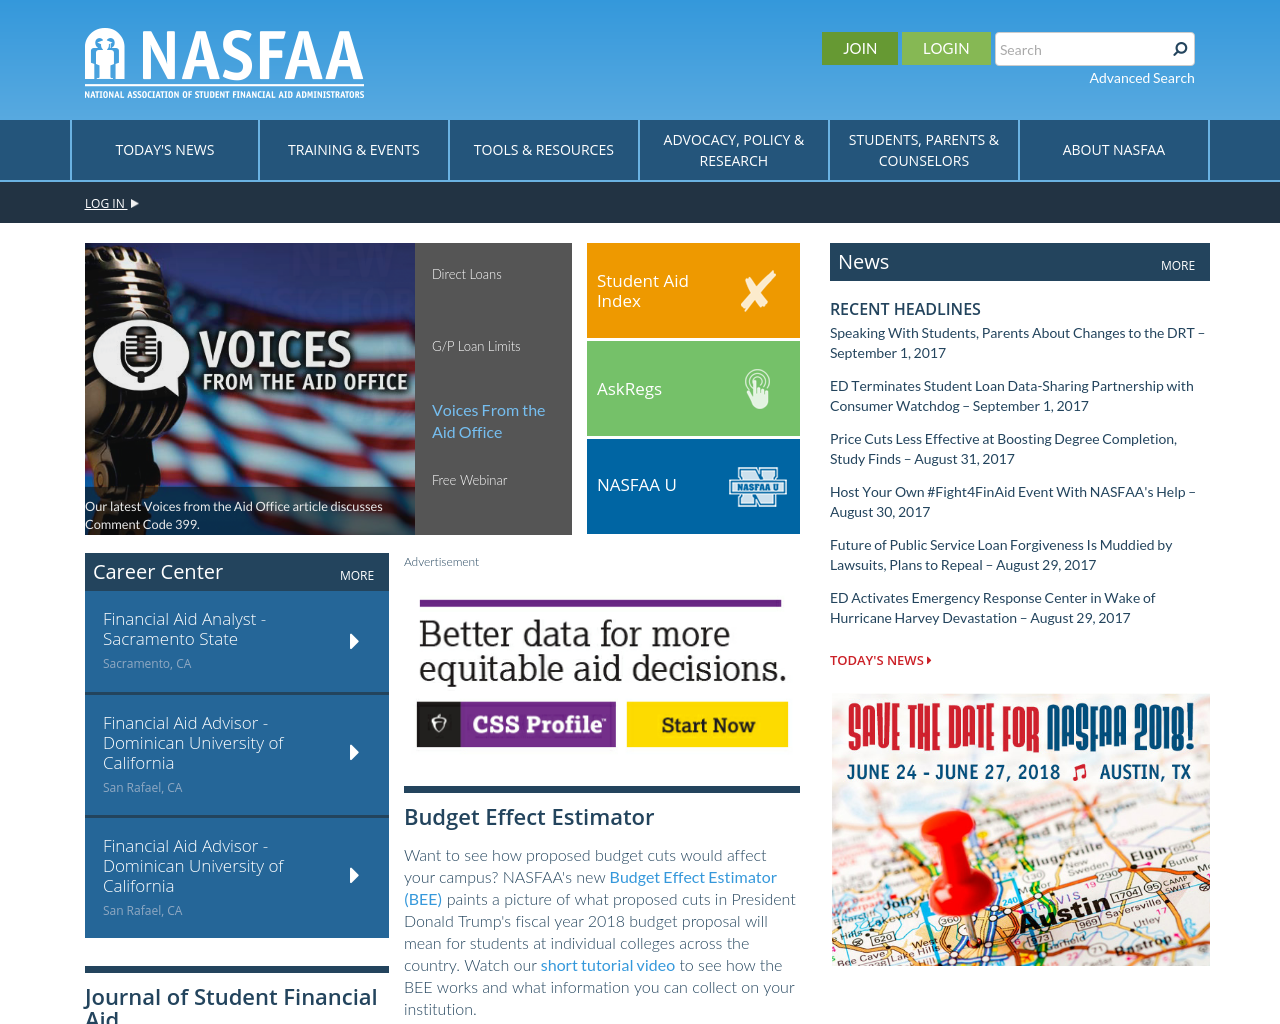 NASFAA-Advertising-Reviews-Pricing